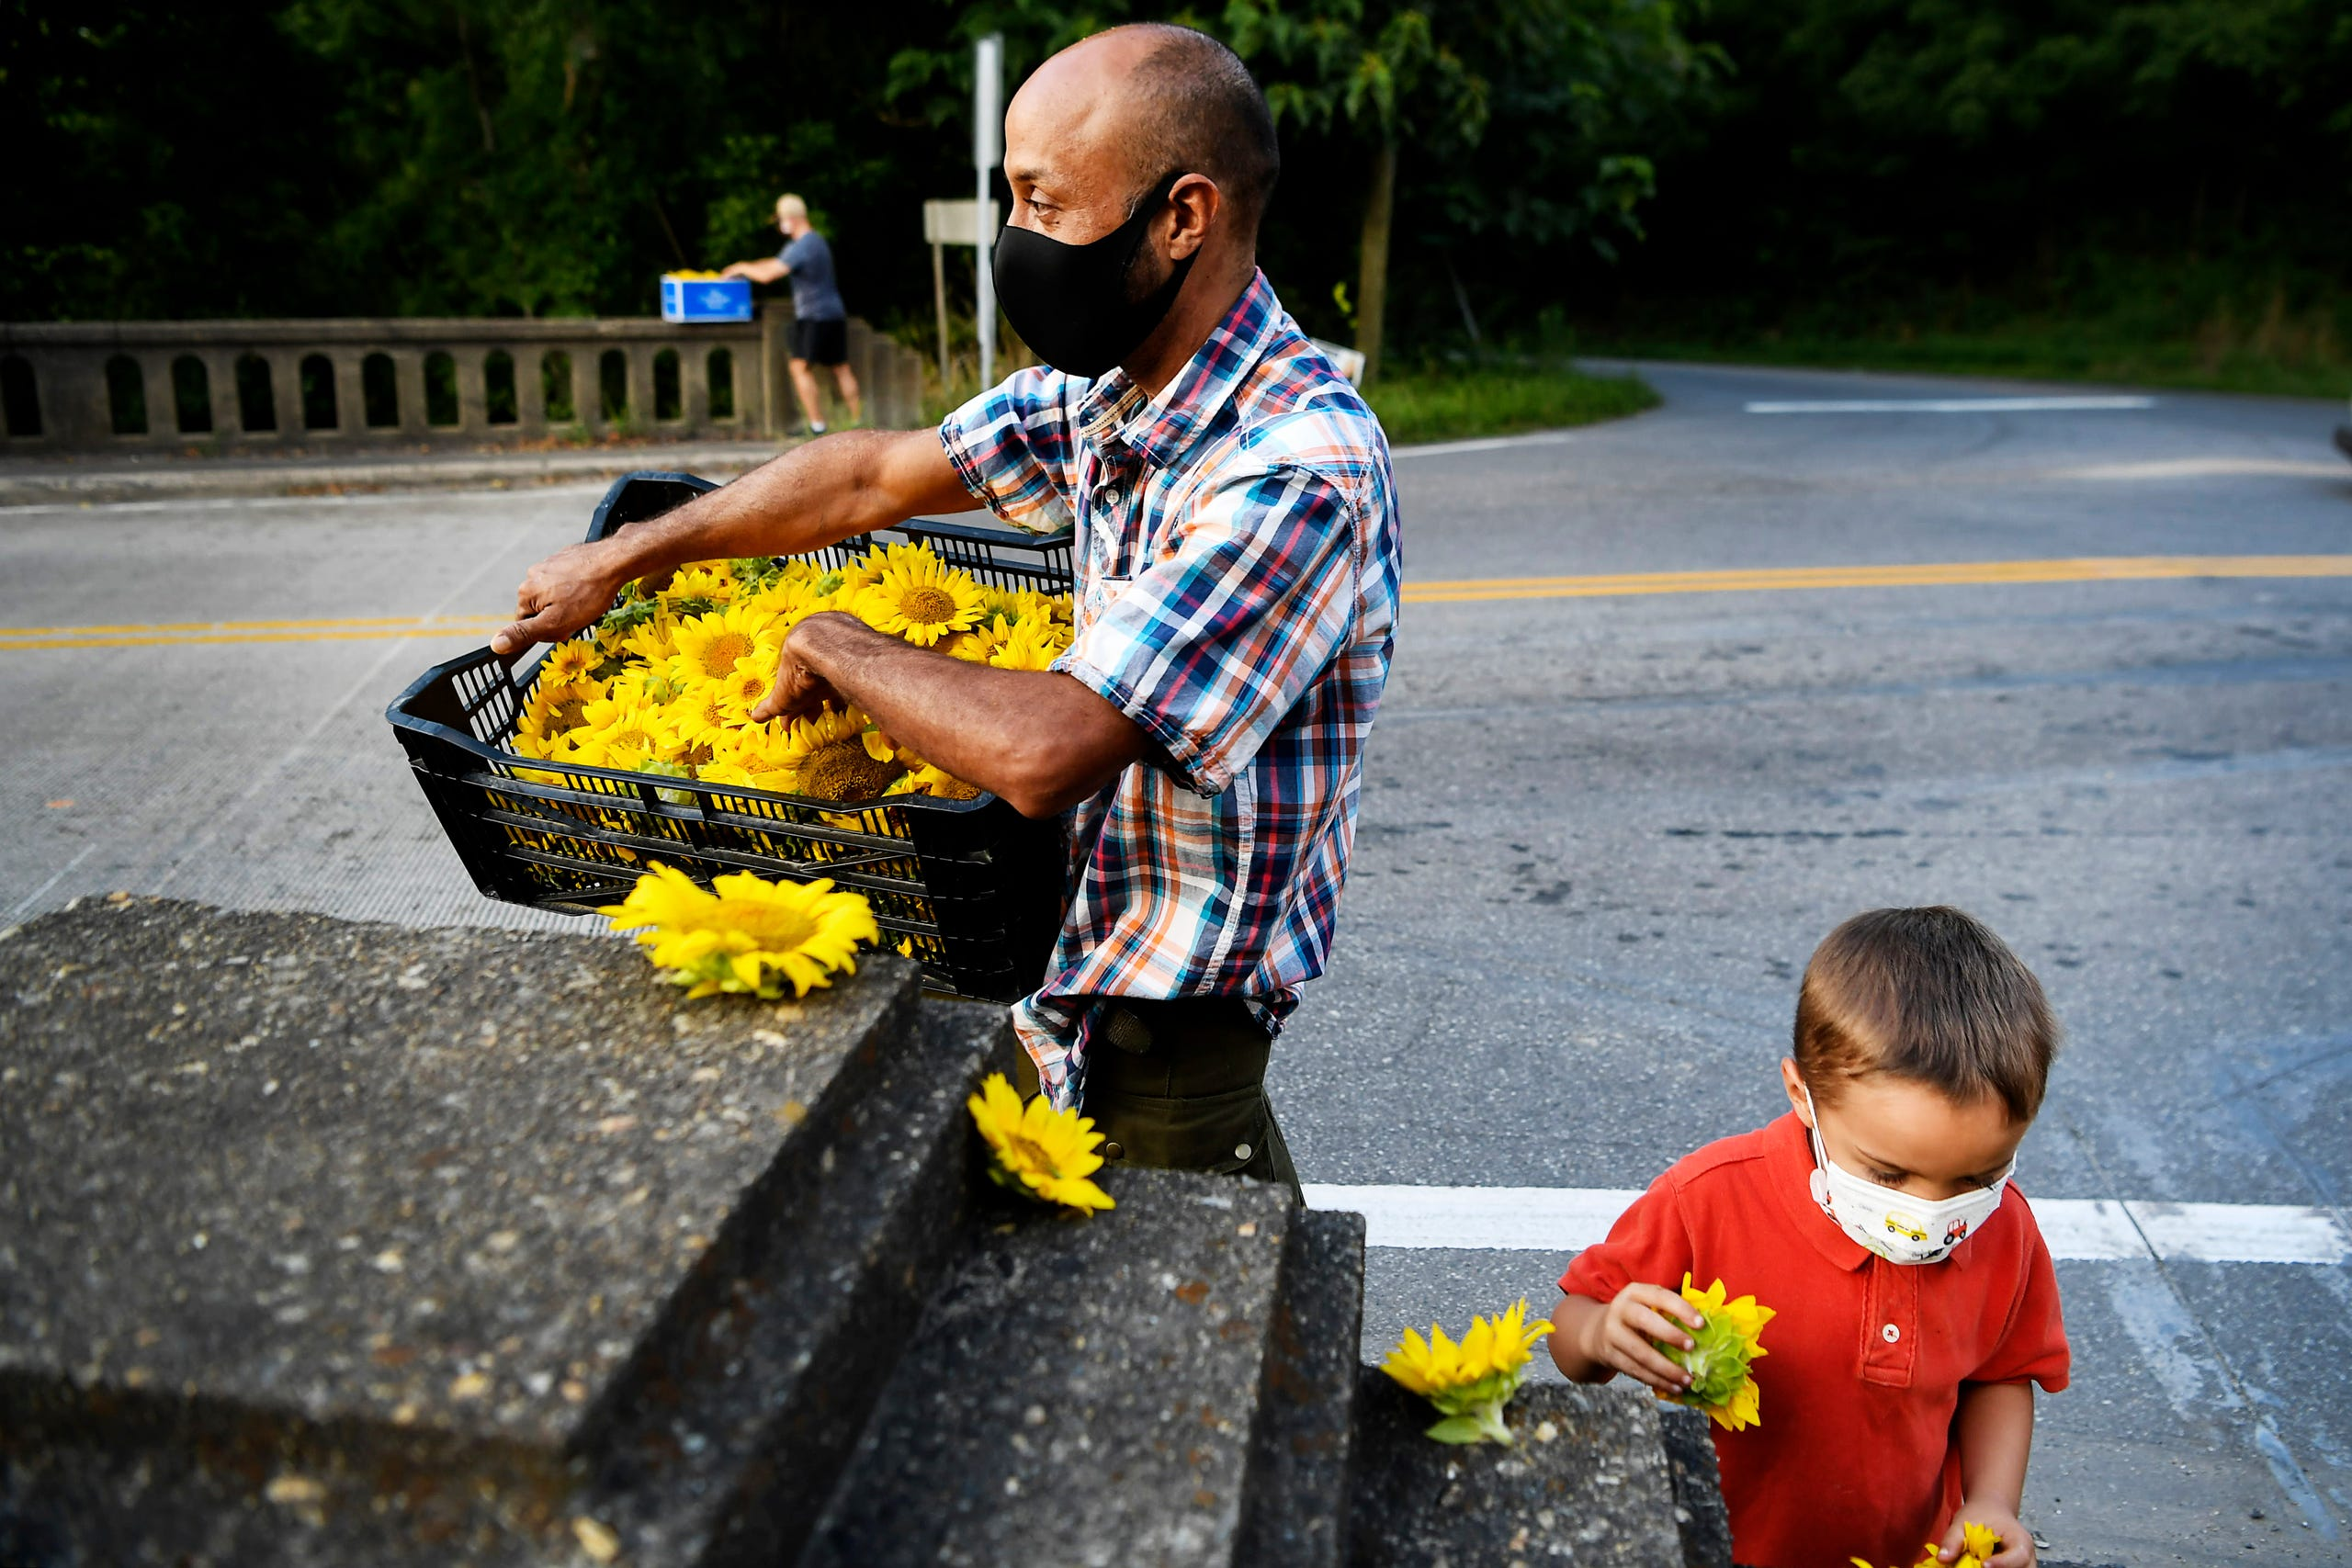 Hans Banzer and his son, Charlie, place flowers along the Craggy Bridge in Woodfin August 19, 2020.